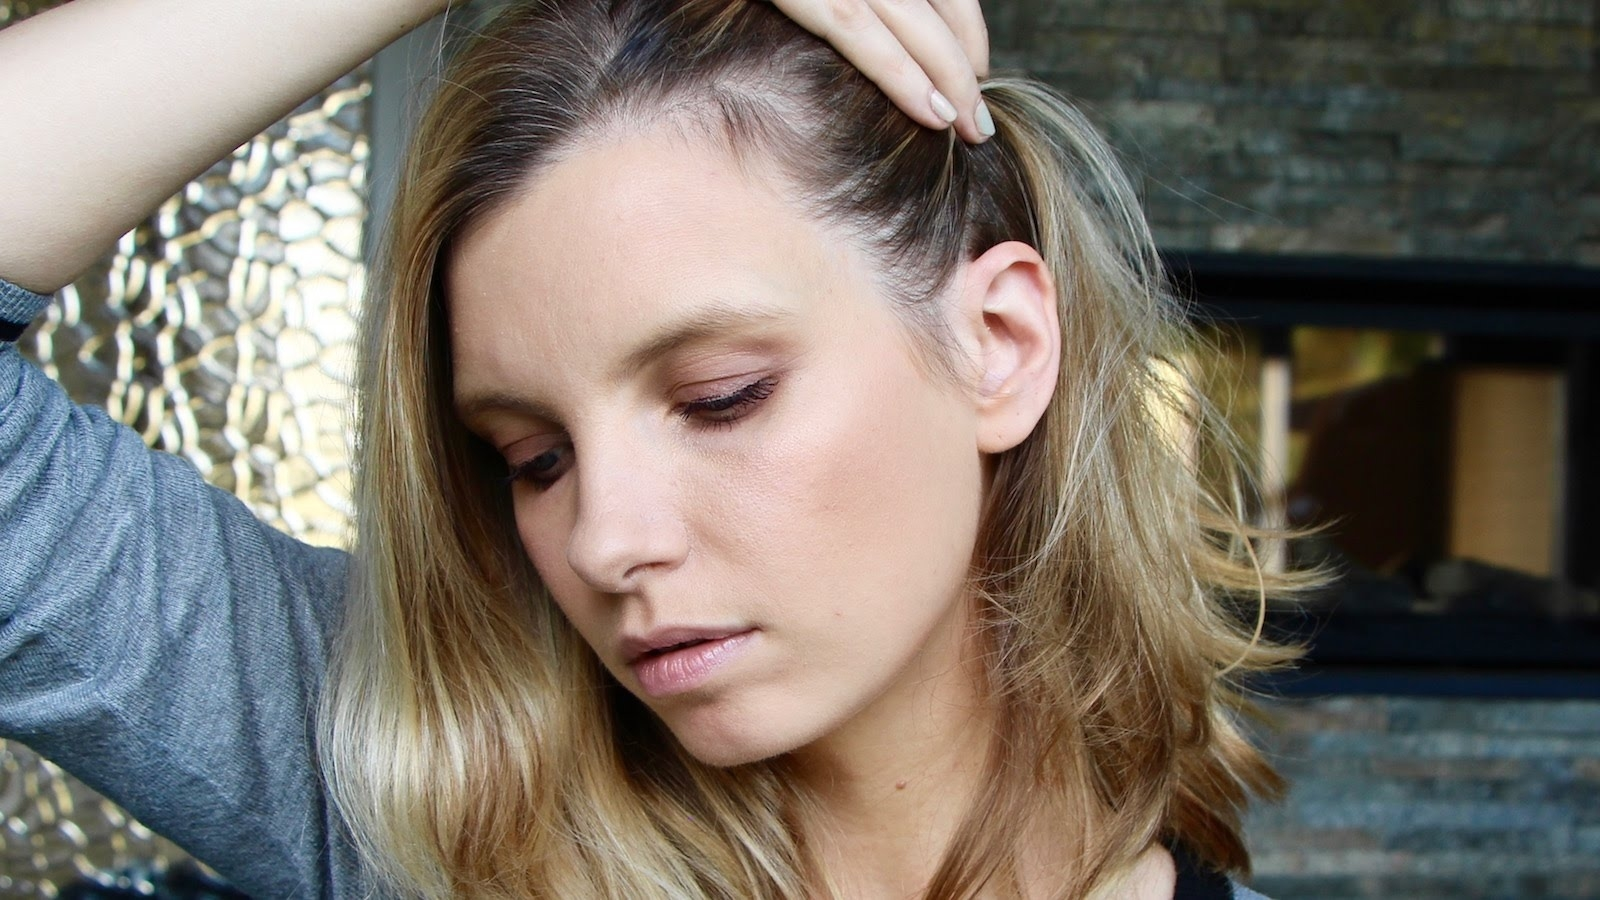 My Post-Pregnancy Hair Loss | A Model Recommends - Youtube for Haircut For Thin Hair After Pregnancy